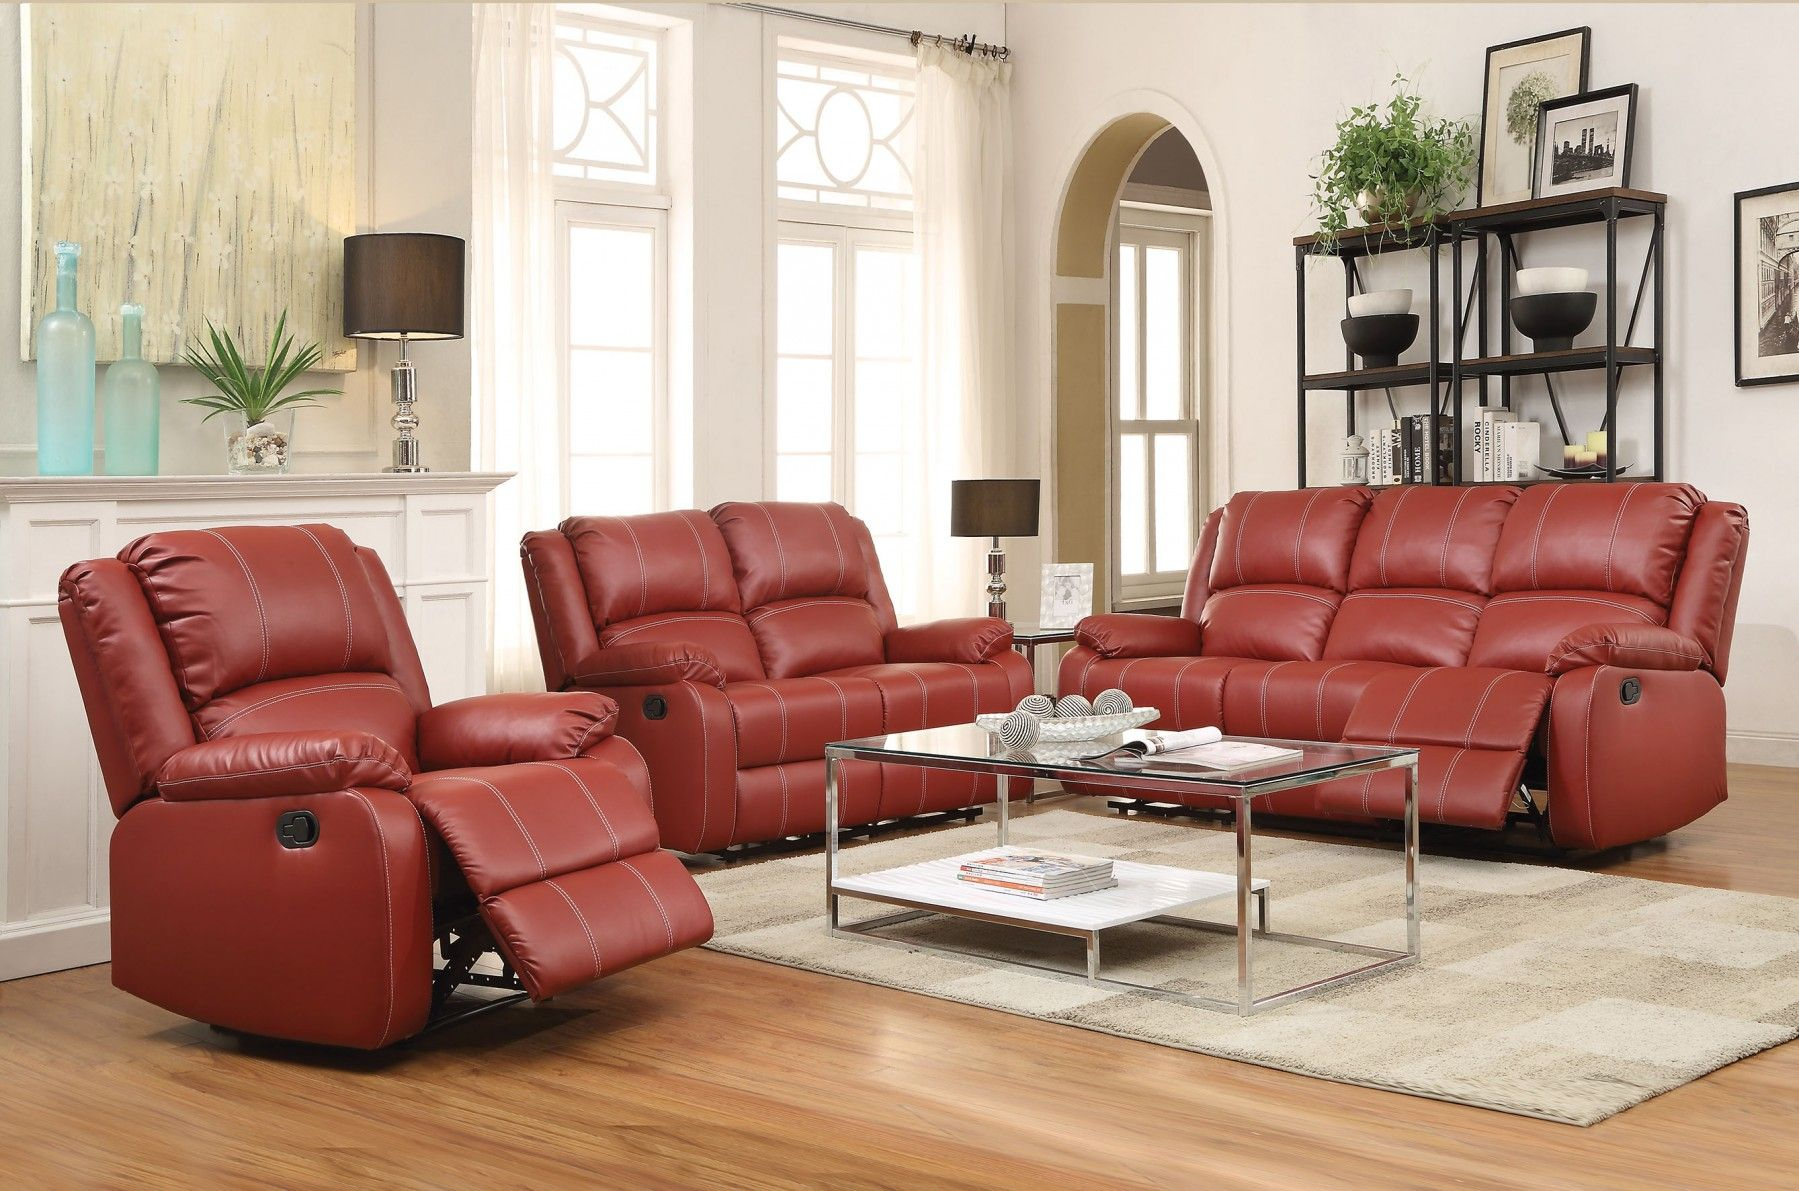 Acme Furniture Jacinta 3 PC Living Room Set PC